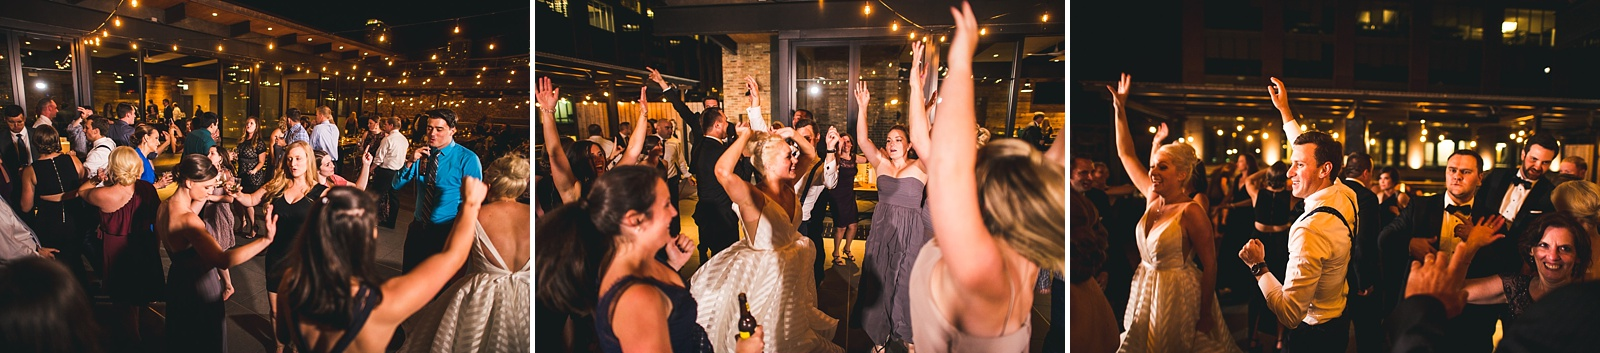 73 best wedding photos from morgans on fulton - Morgan's on Fulton Wedding Photos // Jessica + Bill